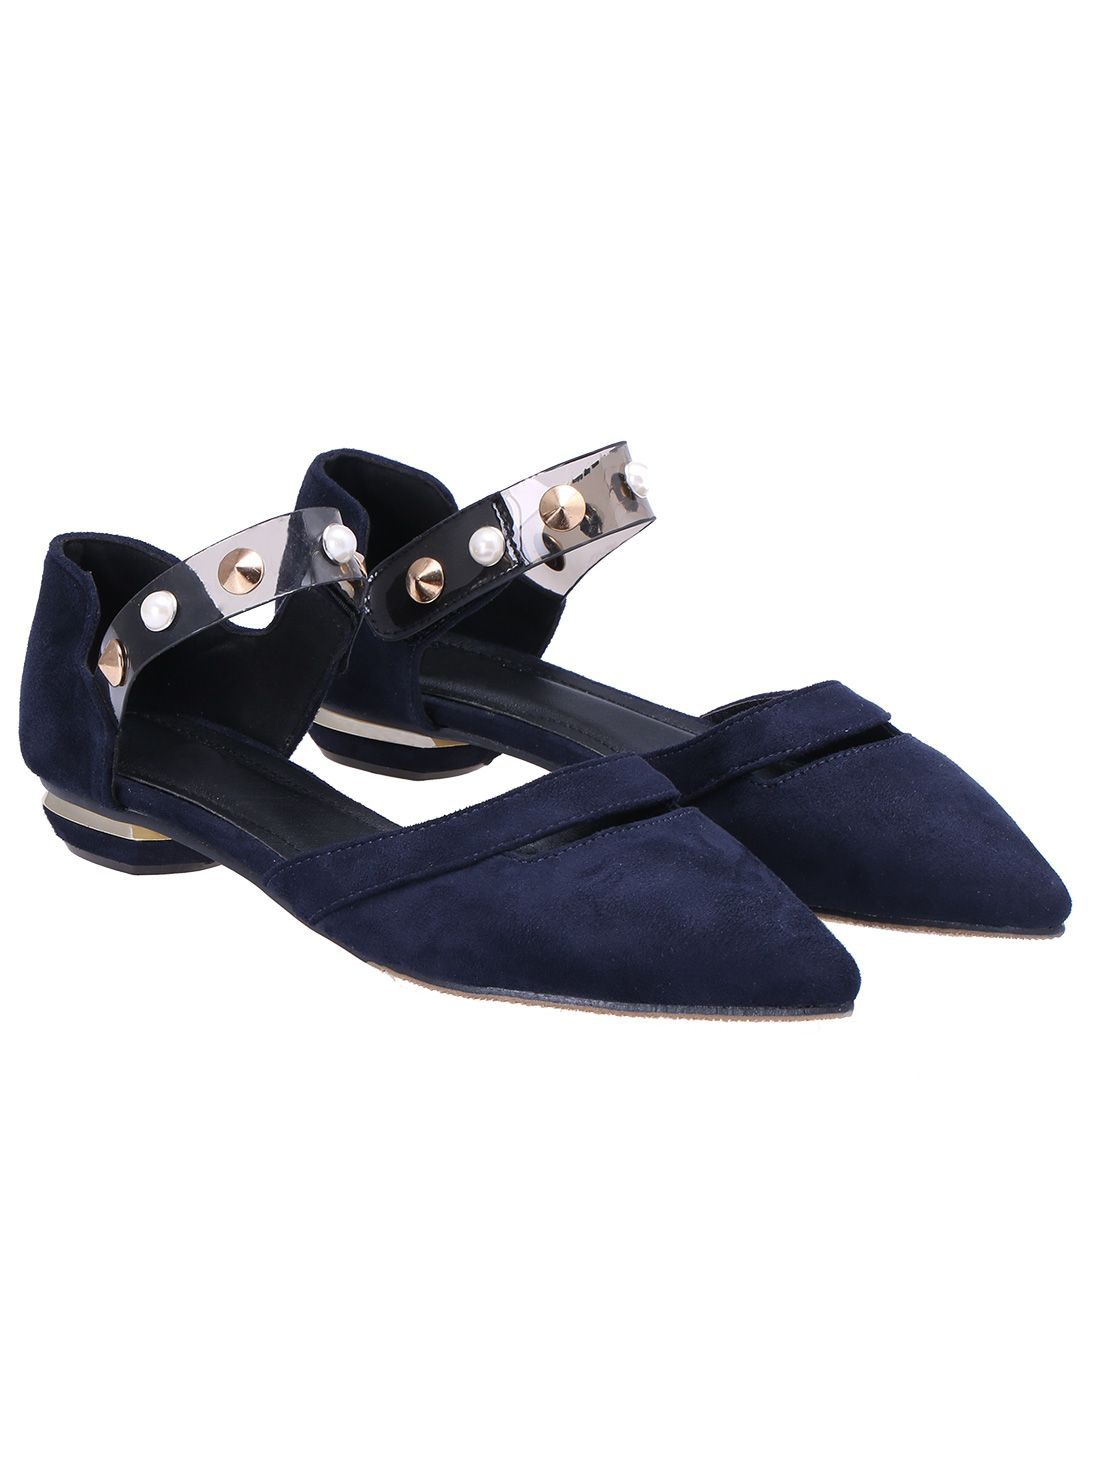 Blue Rivet Point Toe PU Flats-SheIn